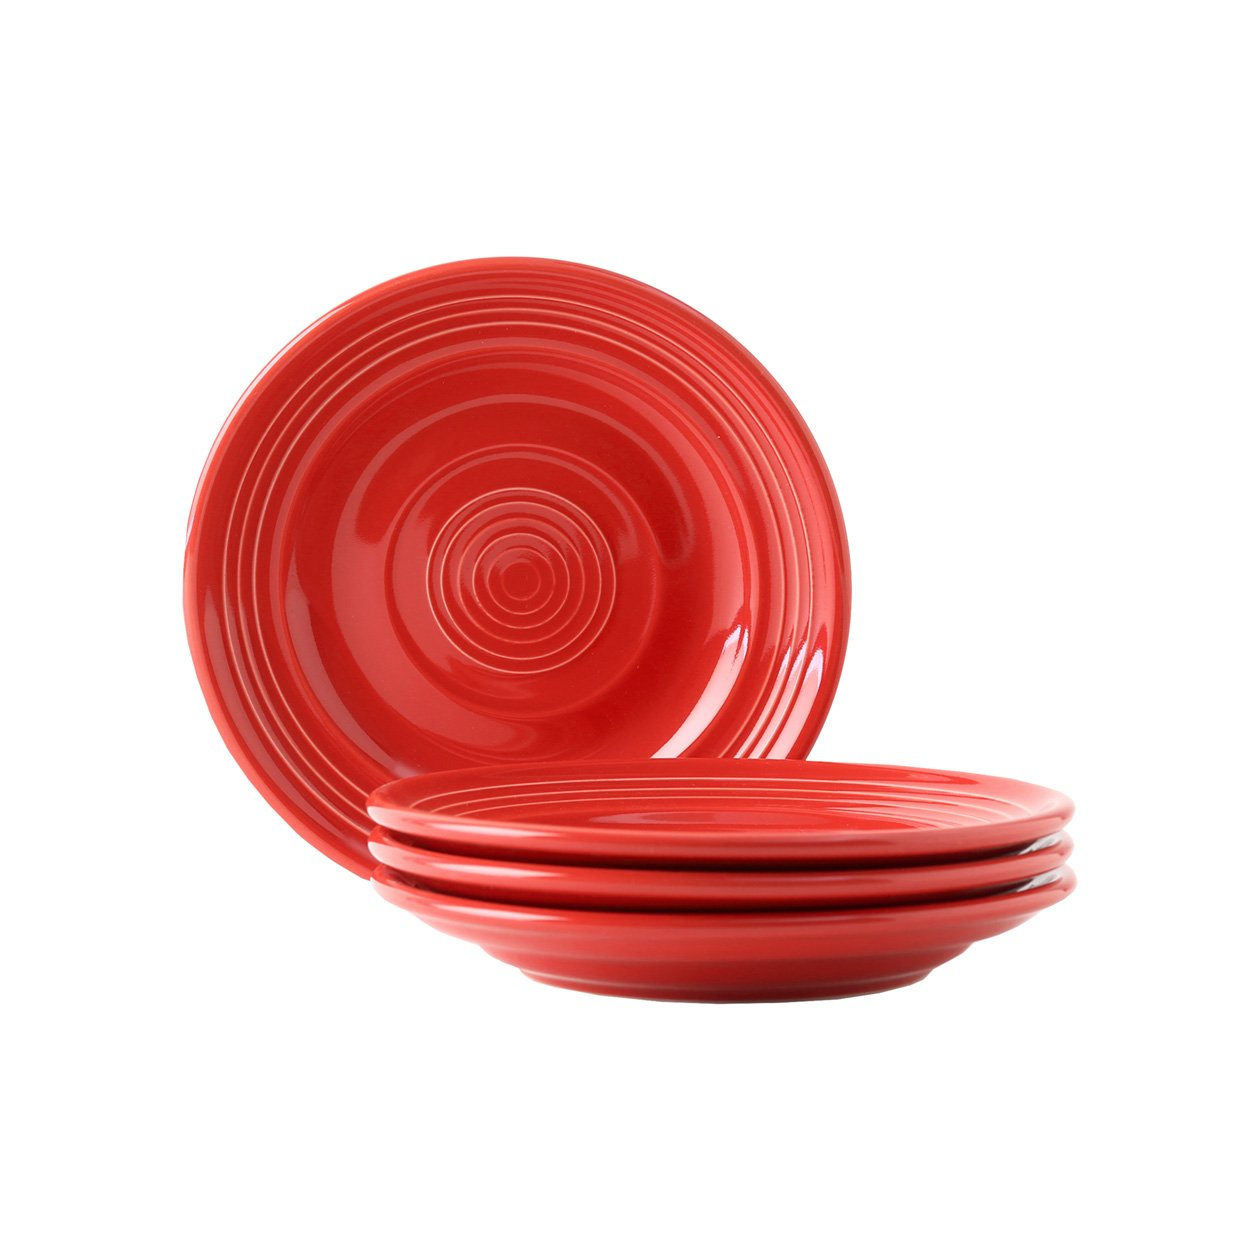 Tuxton Home Concentrix Side Plate (Set of 4), 6 1/4'', Cayenne Red; Heavy Duty; Chip Resistant; Lead and Cadmium Free; Freezer to Oven Safe up to 500F